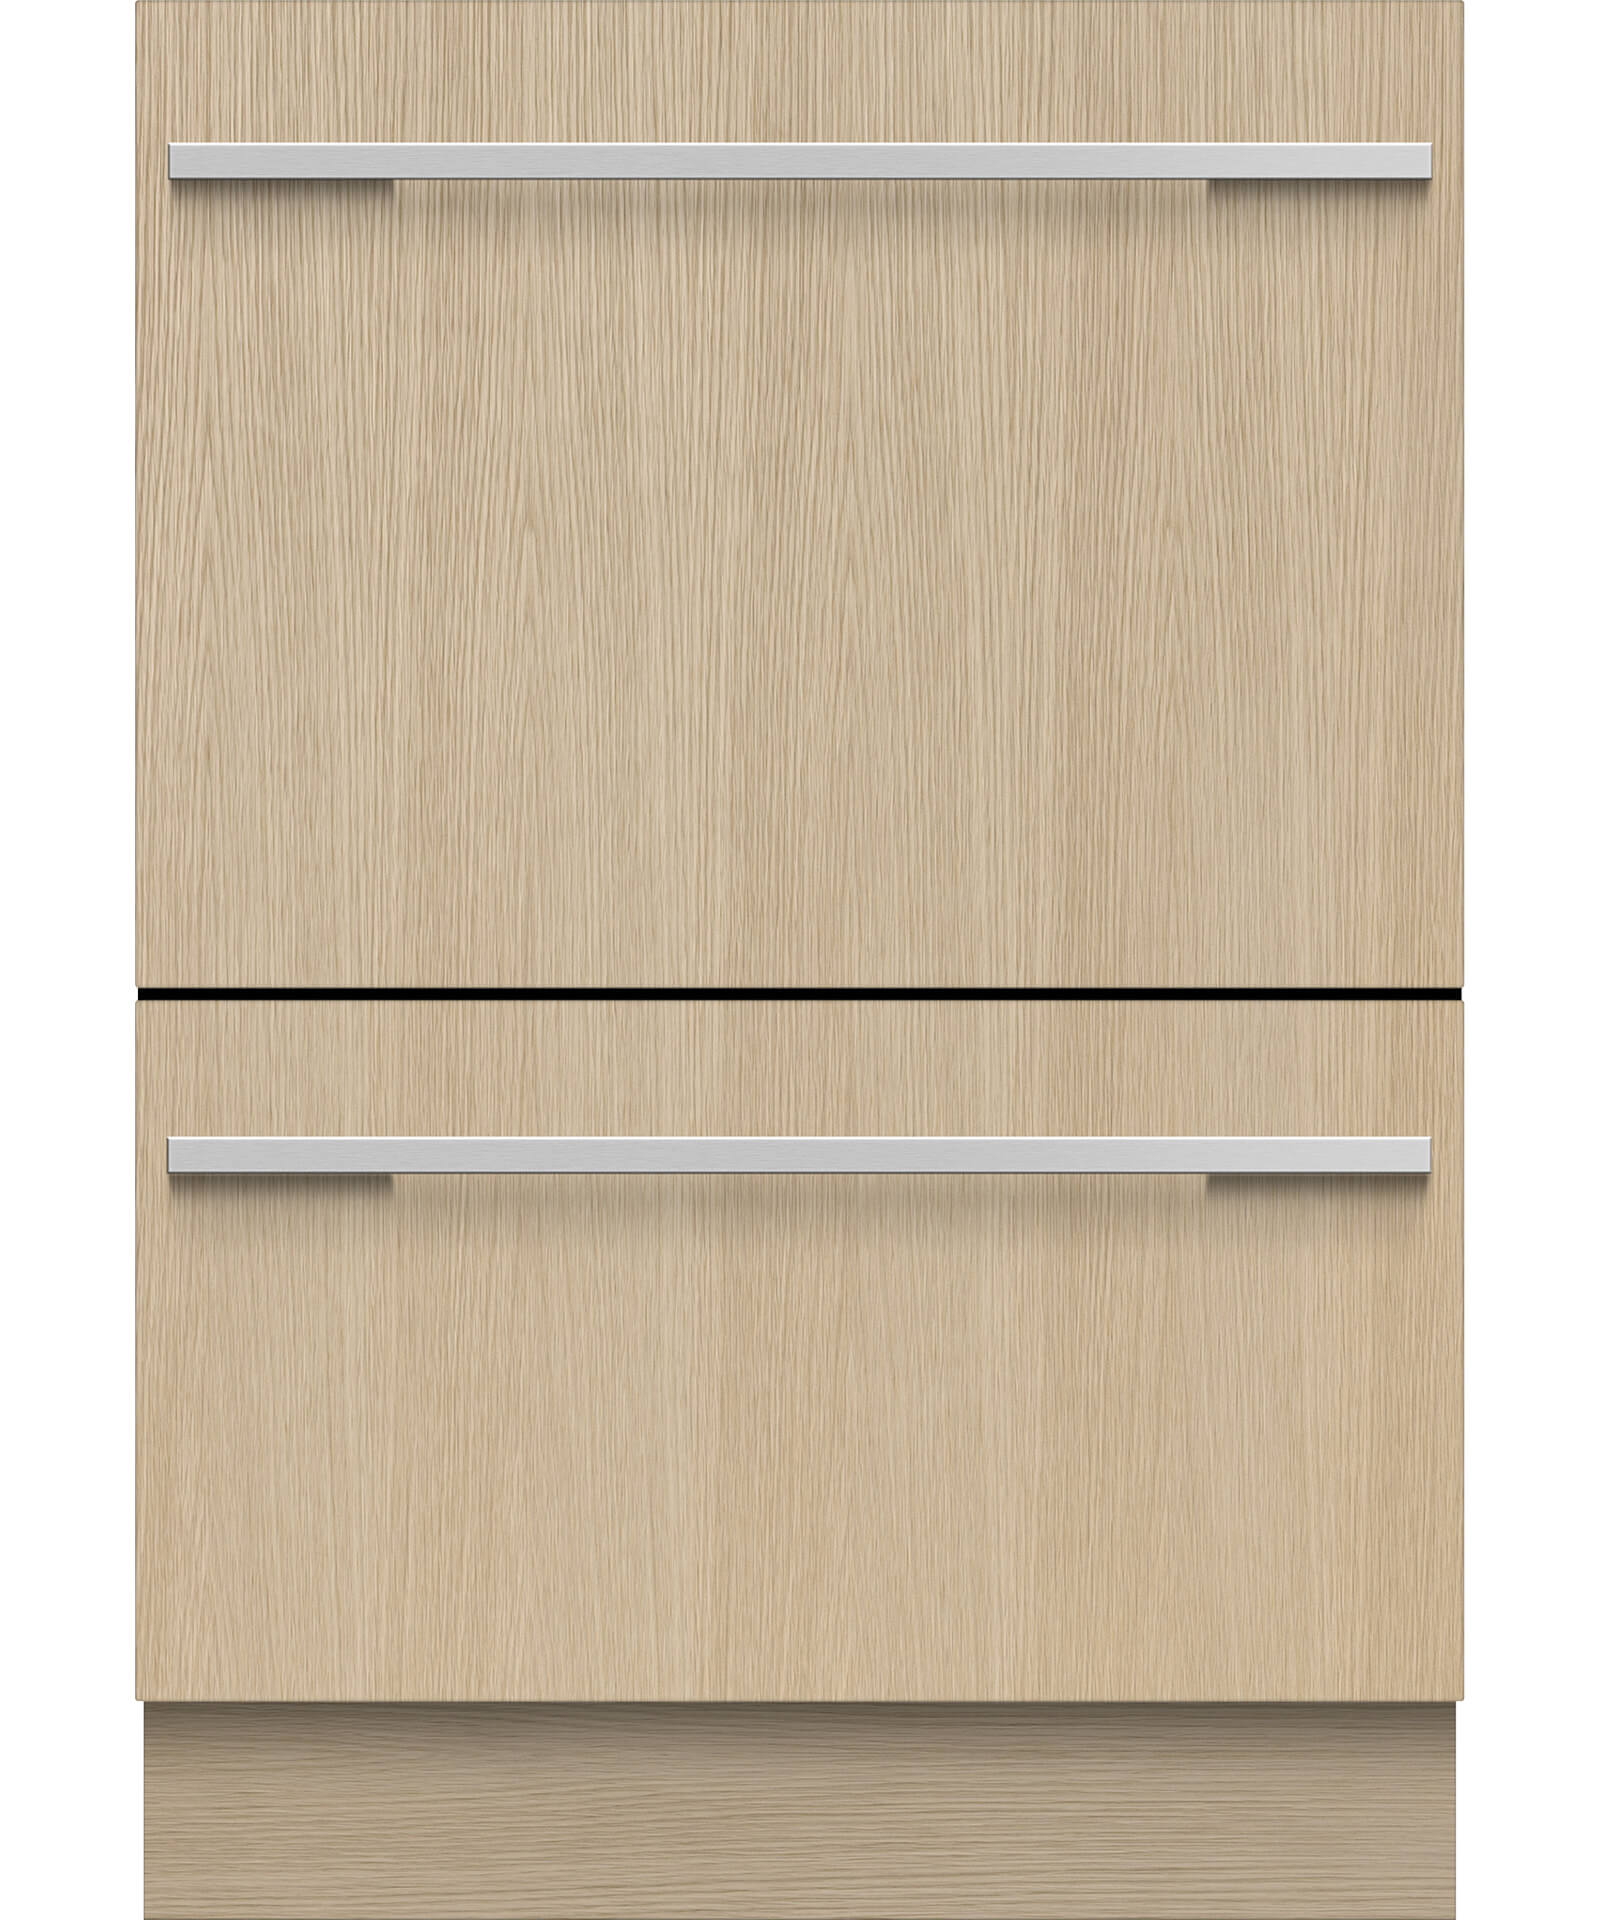 DD24DTI9_N - Tall Panel Ready Double DishDrawer™ Dishwasher incl Sanitize, Extra Dry and full flex racking - 81217